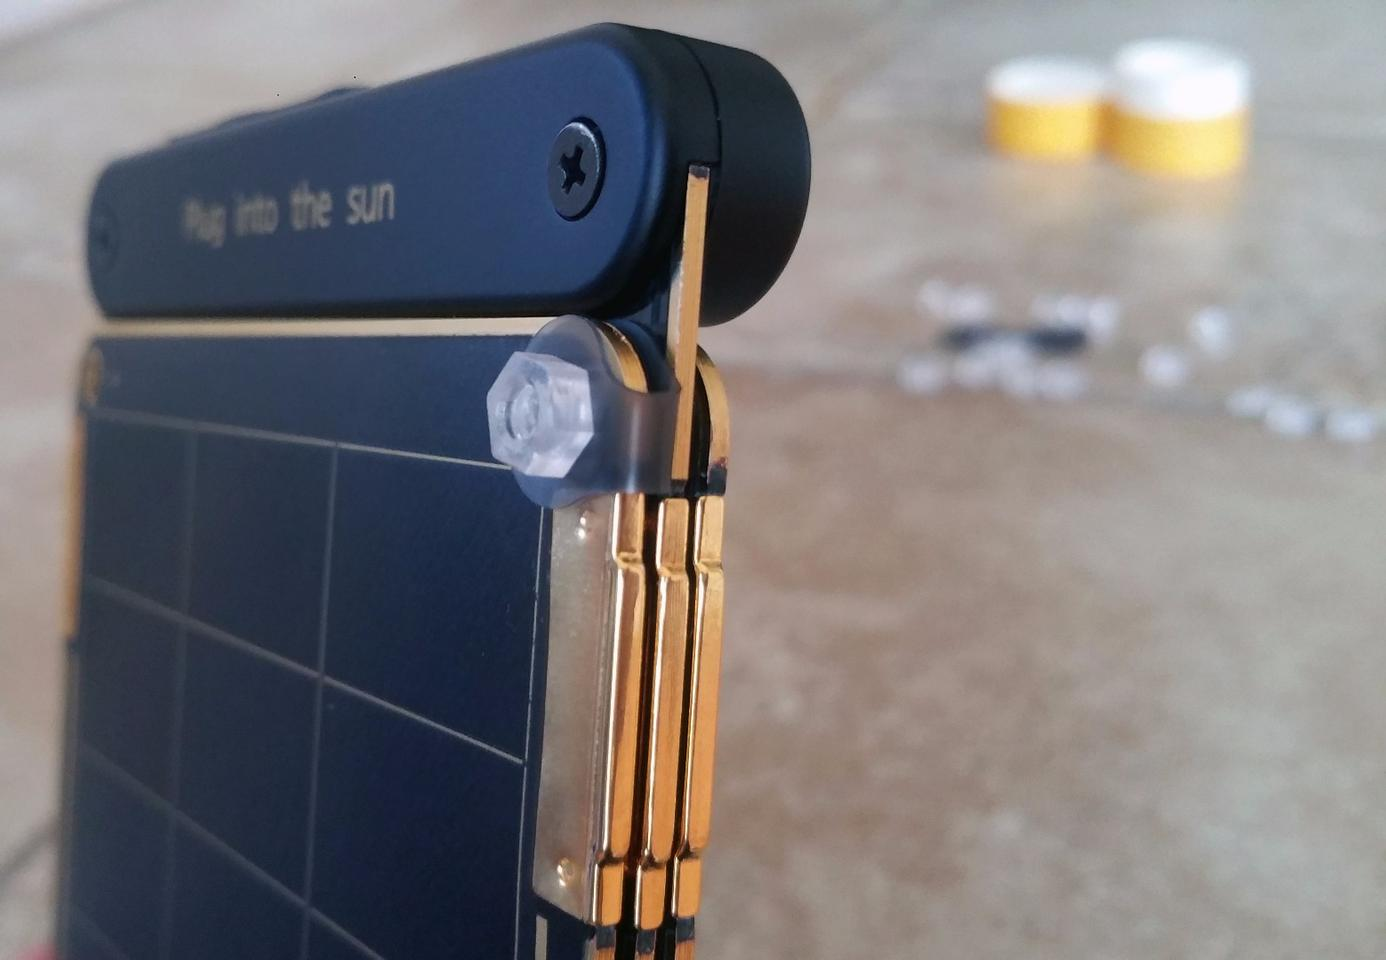 If you're smart about which way to face the includednuts and bolts, Solar Paper's panelswillstill be able to magnetically stack atop each other